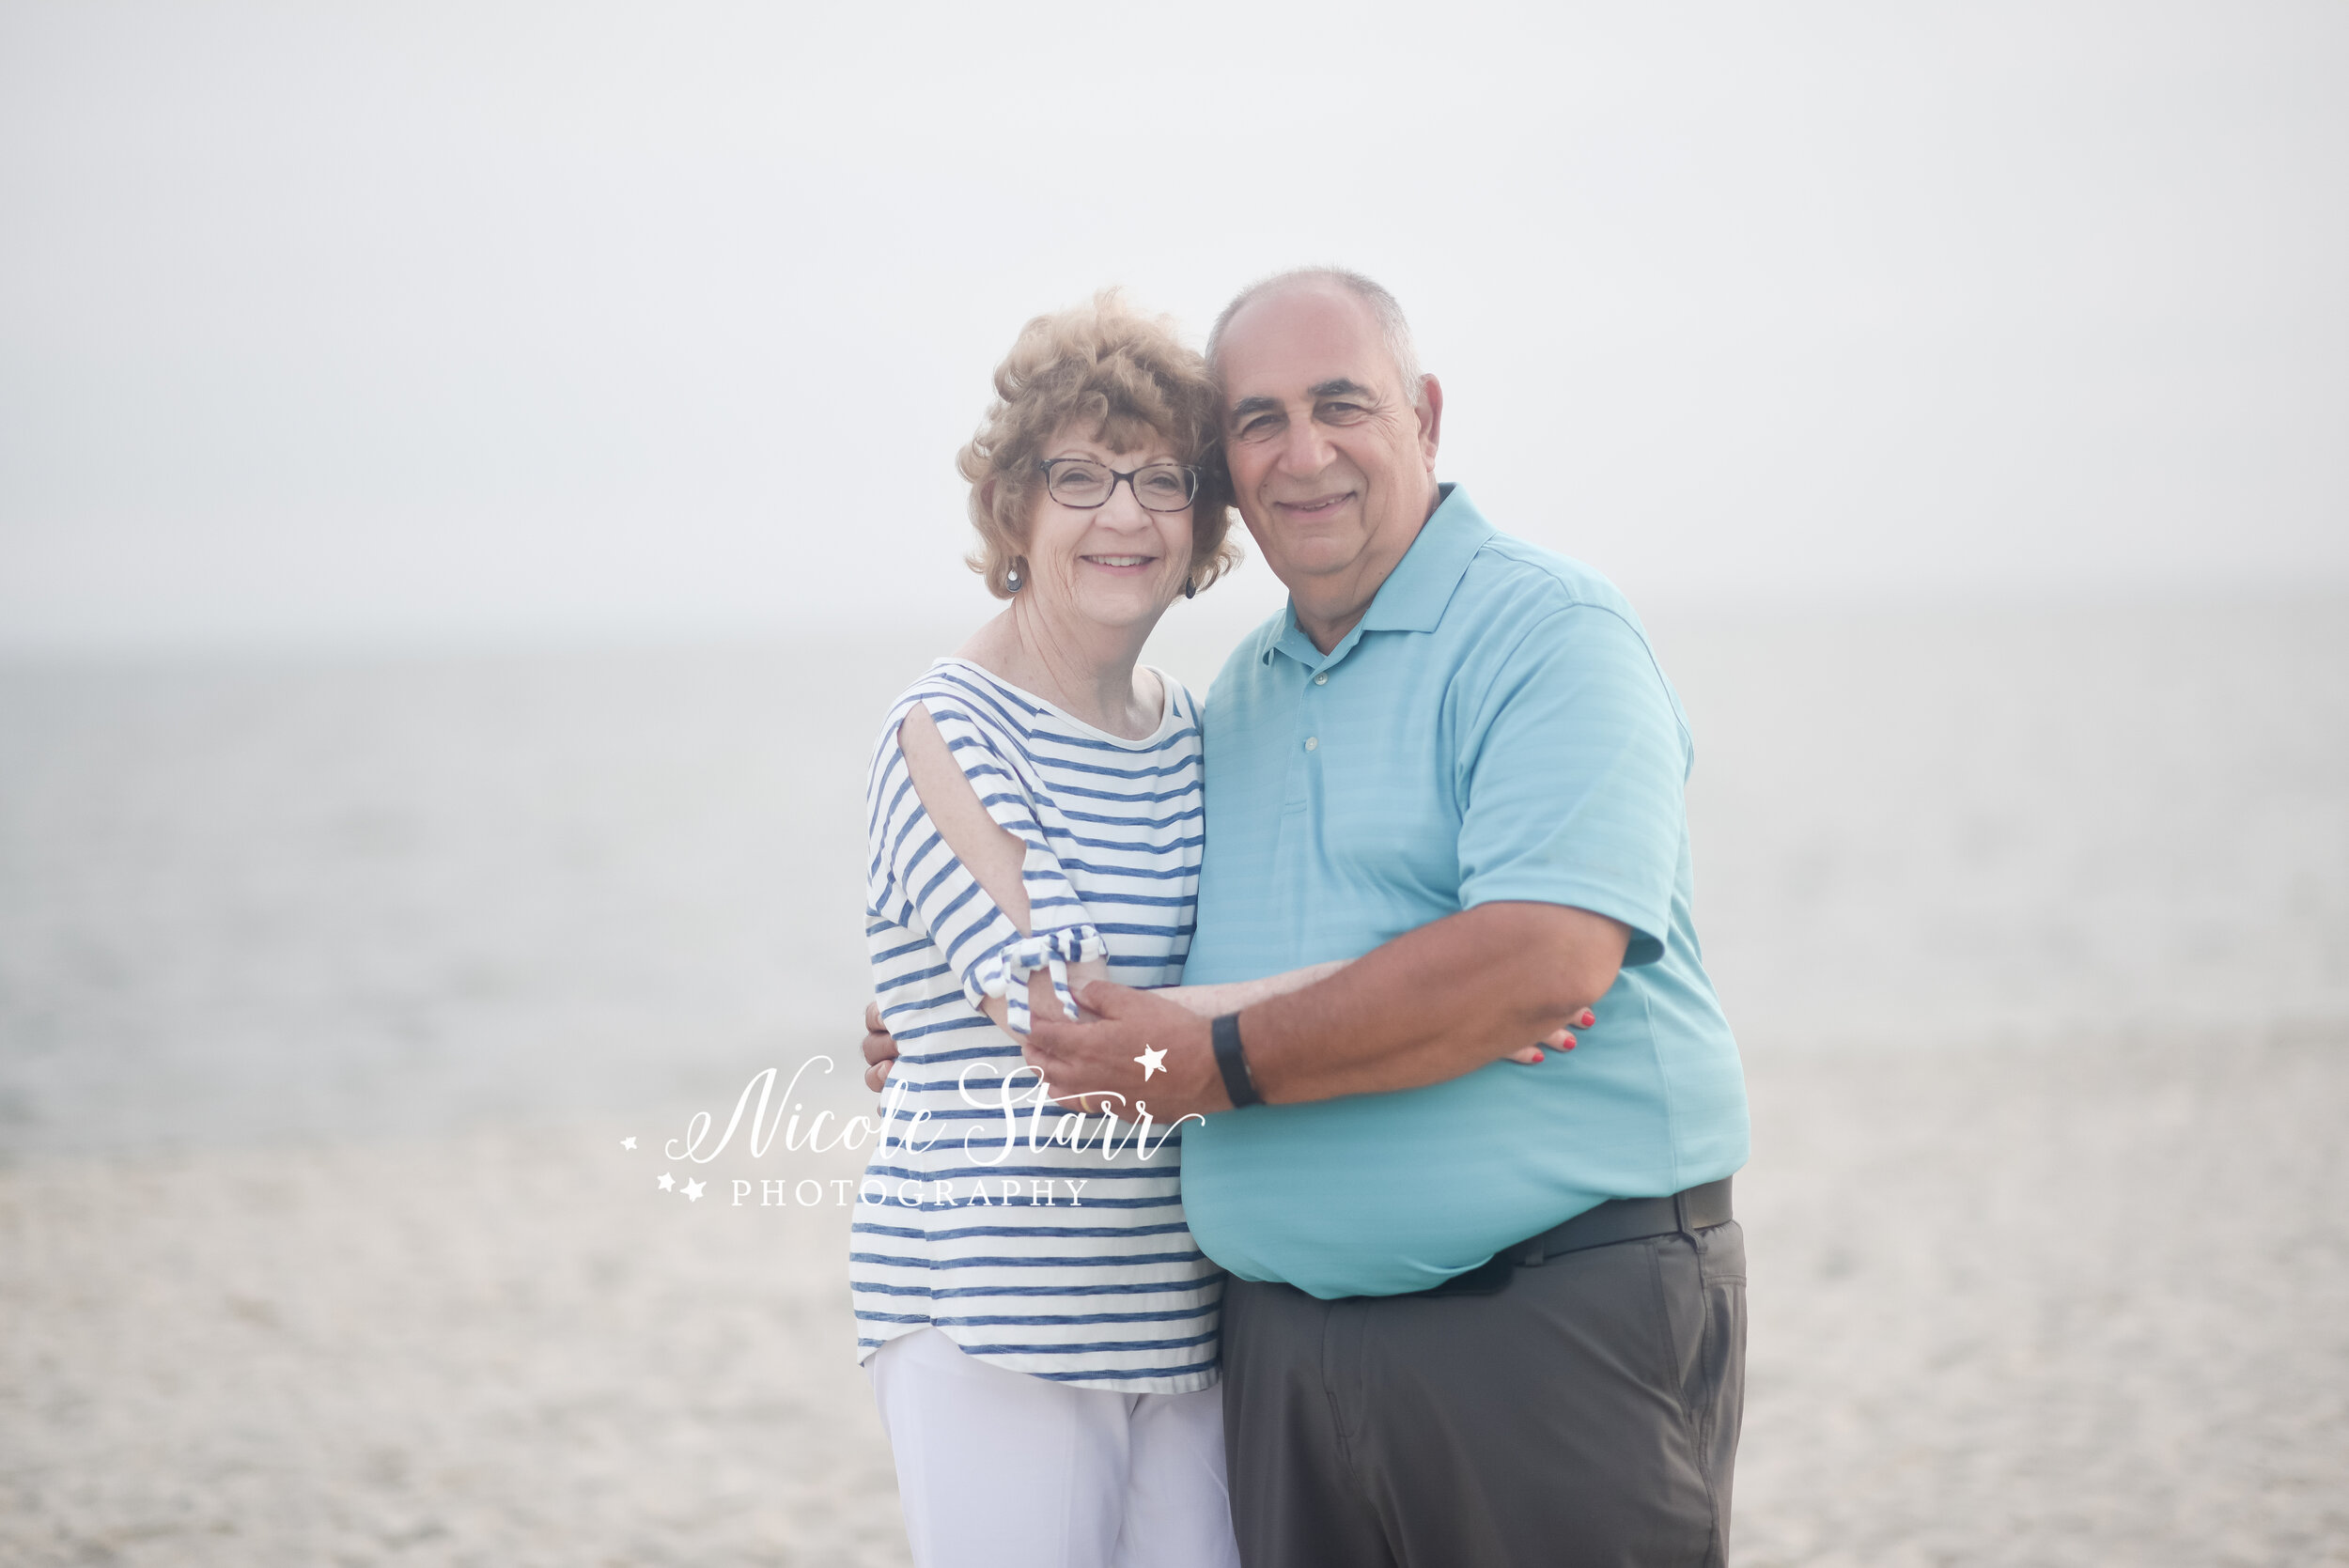 Nicole Starr Photography   Cape Cod Family Photographer   Boston Family Photographer   Family Photographer   Beach Family Photographer   Massachusetts Family Photographer   Extended family portraits, beach family portraits, Cape Cod portraits, Cape Cod family session, Large family photos on the beach